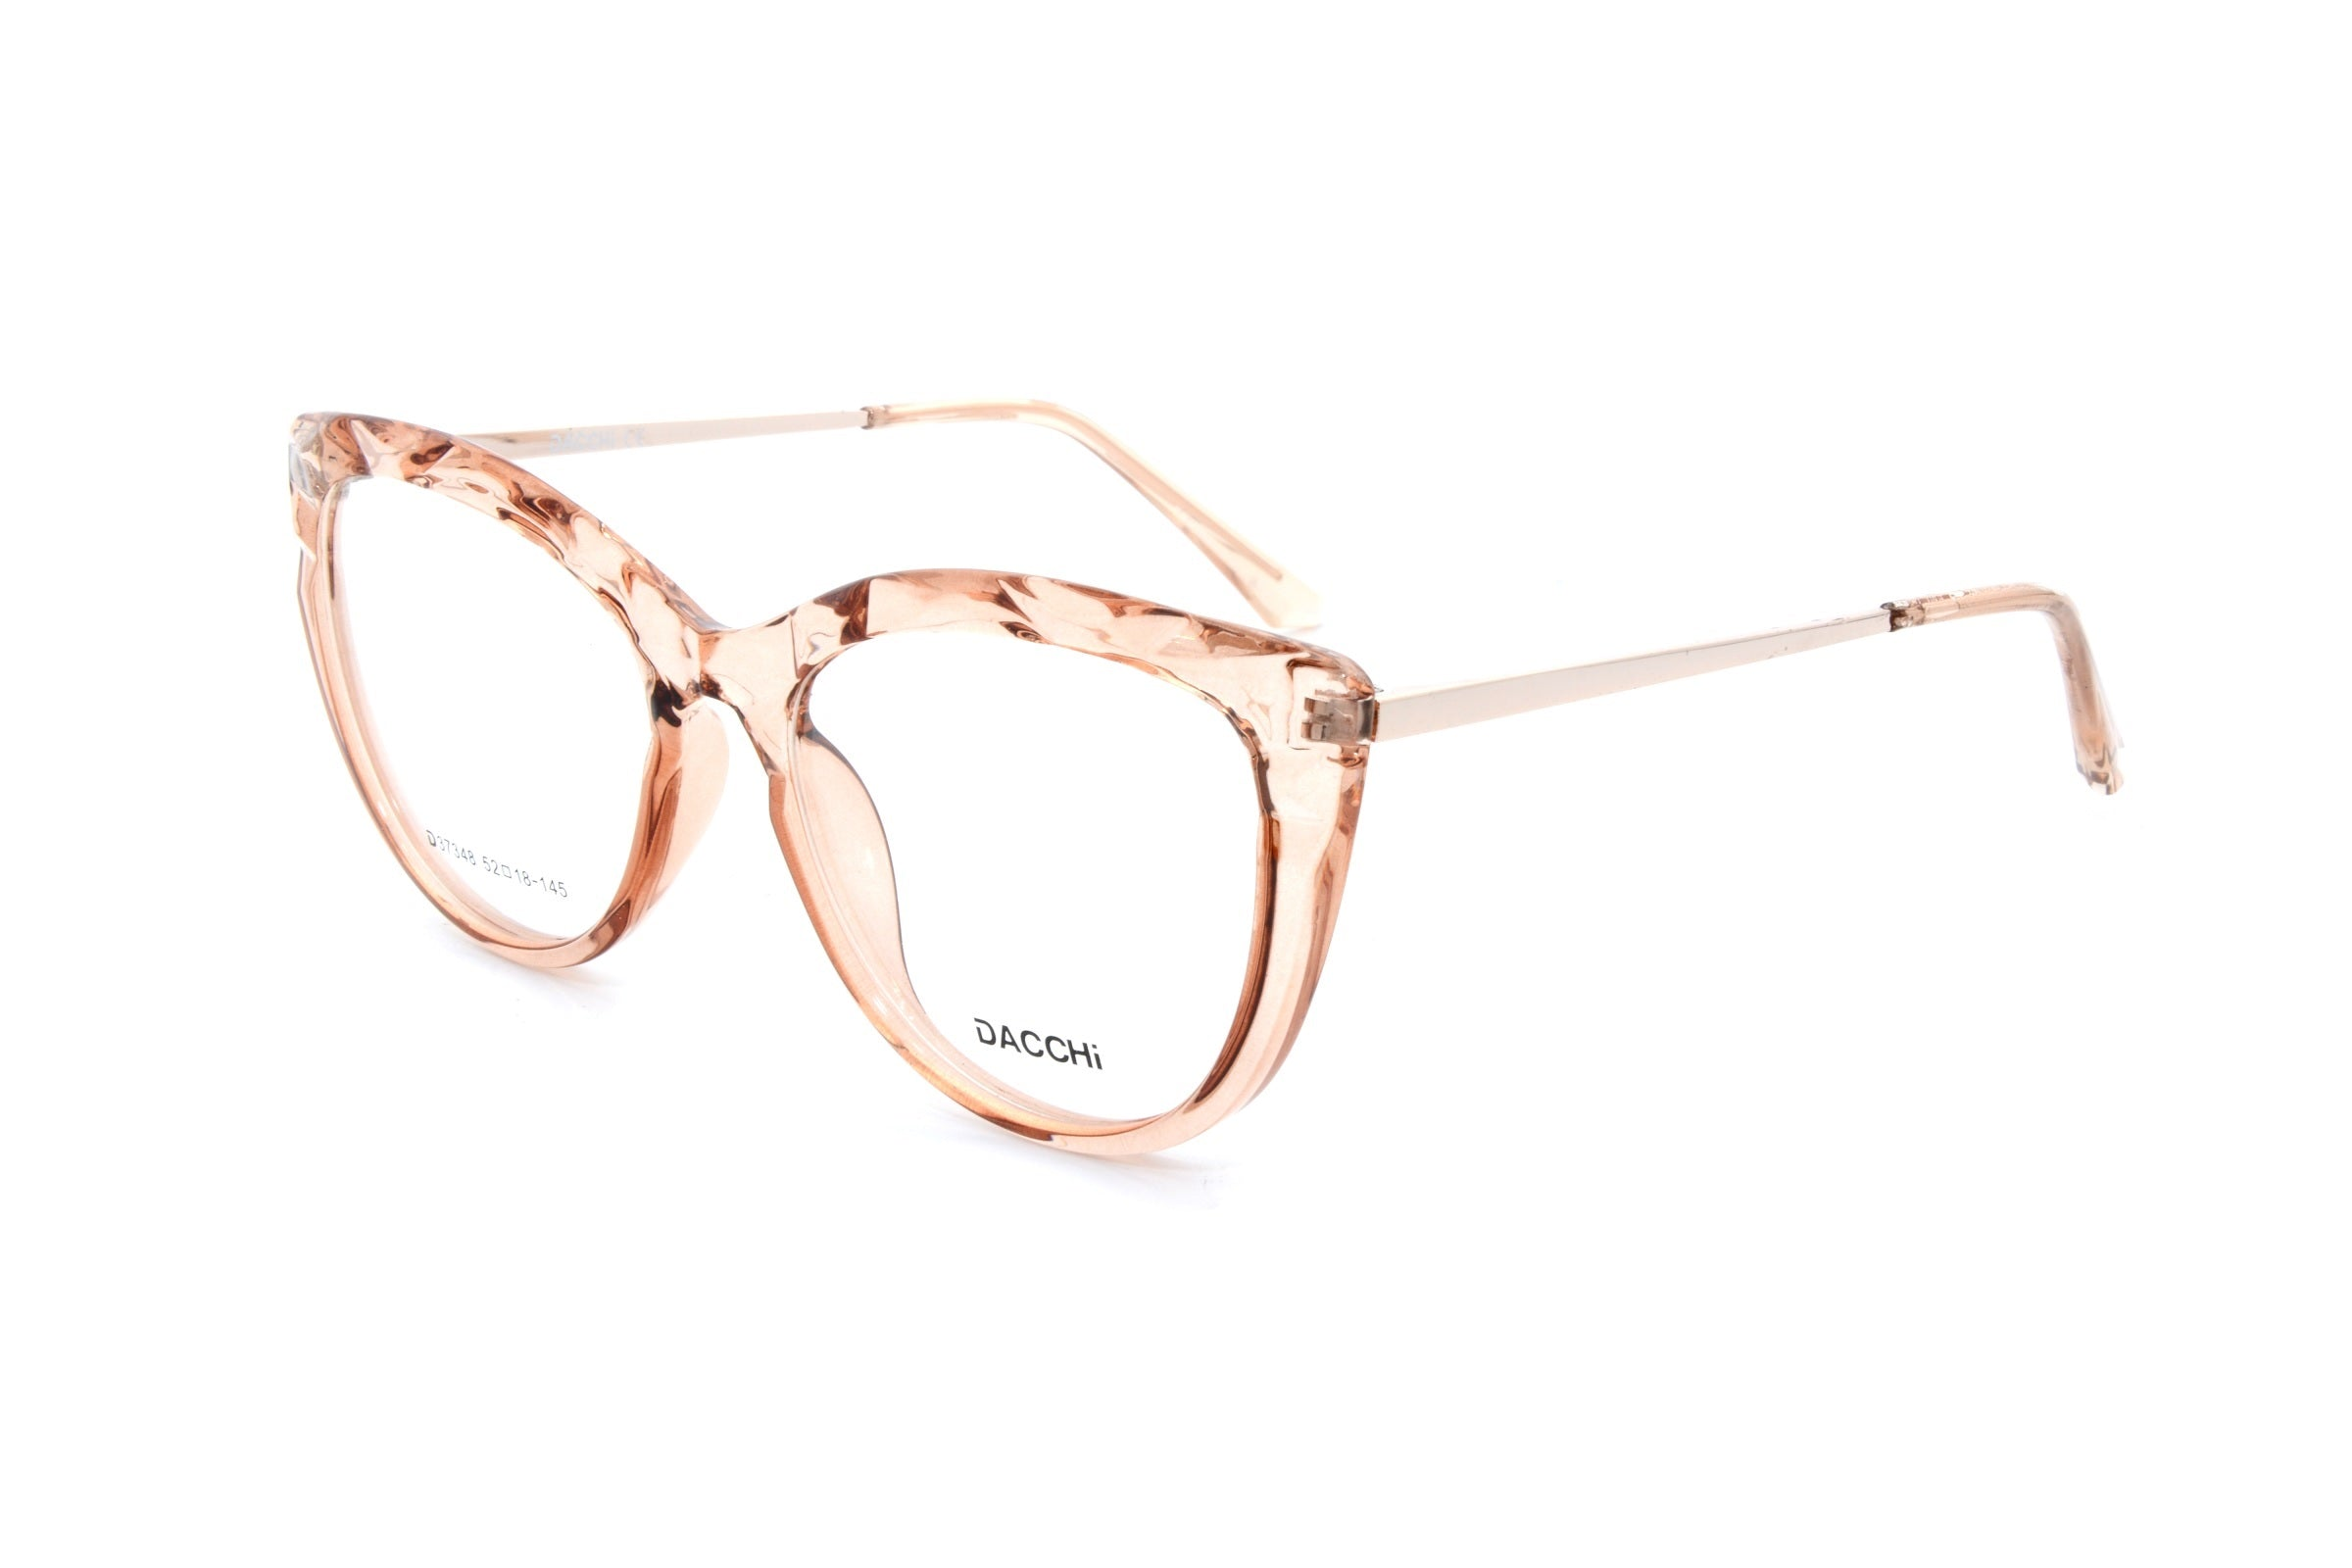 Dacchi eyewear 37348, C2 - Optics Trading